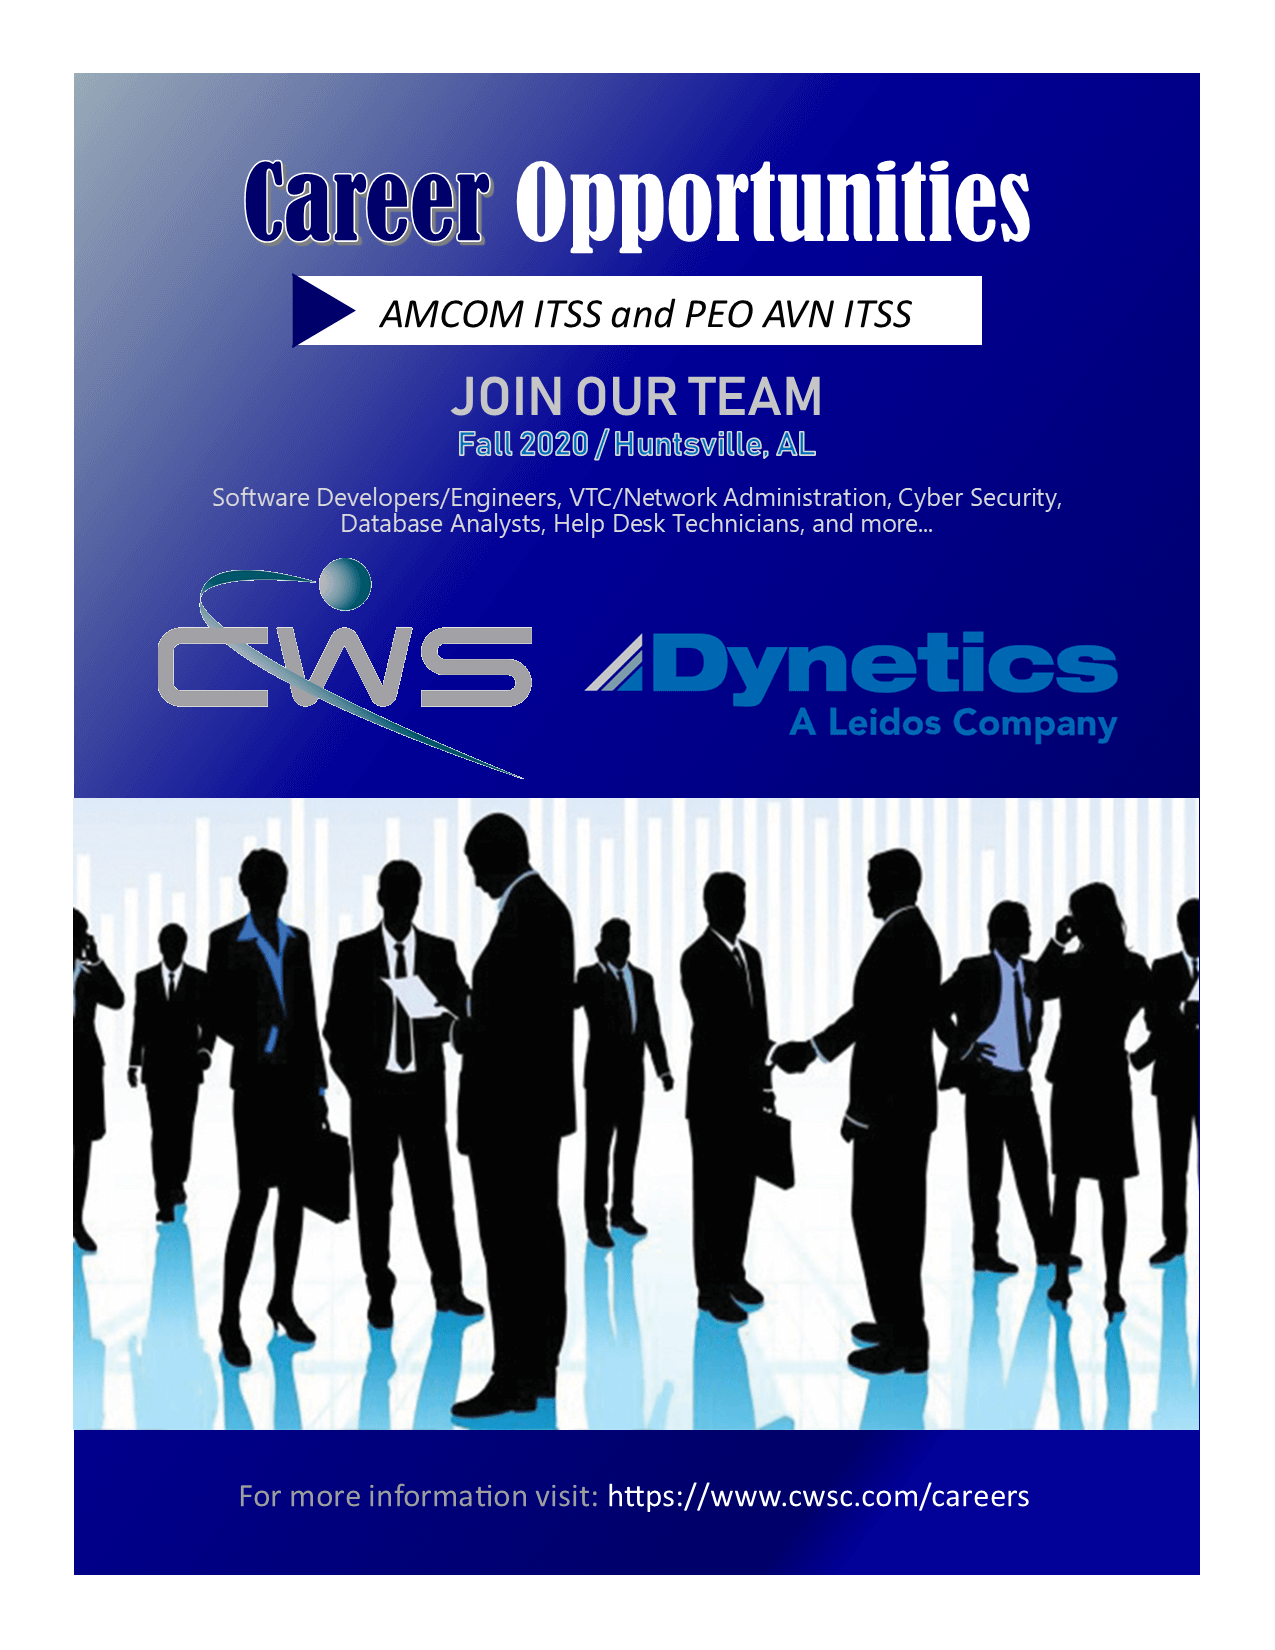 Career Opportunities - Huntsville, AL